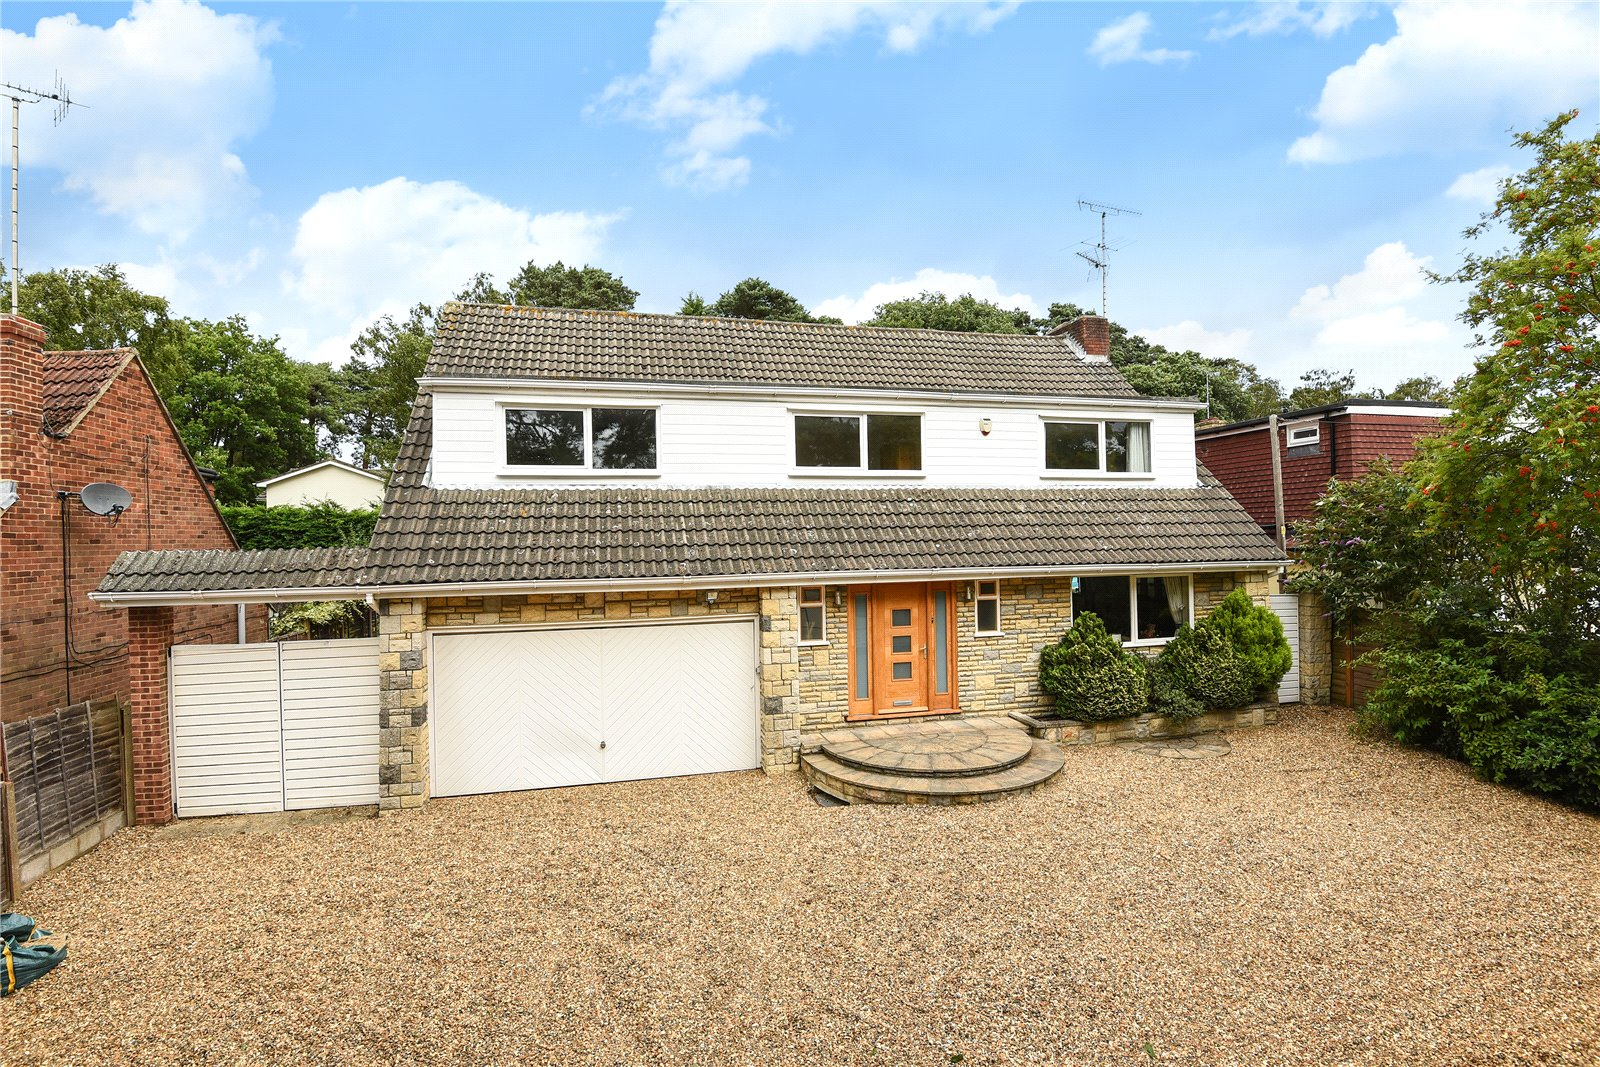 5 Bedrooms Detached House for sale in Yeovil Road, College Town, Sandhurst, Berkshire, GU47